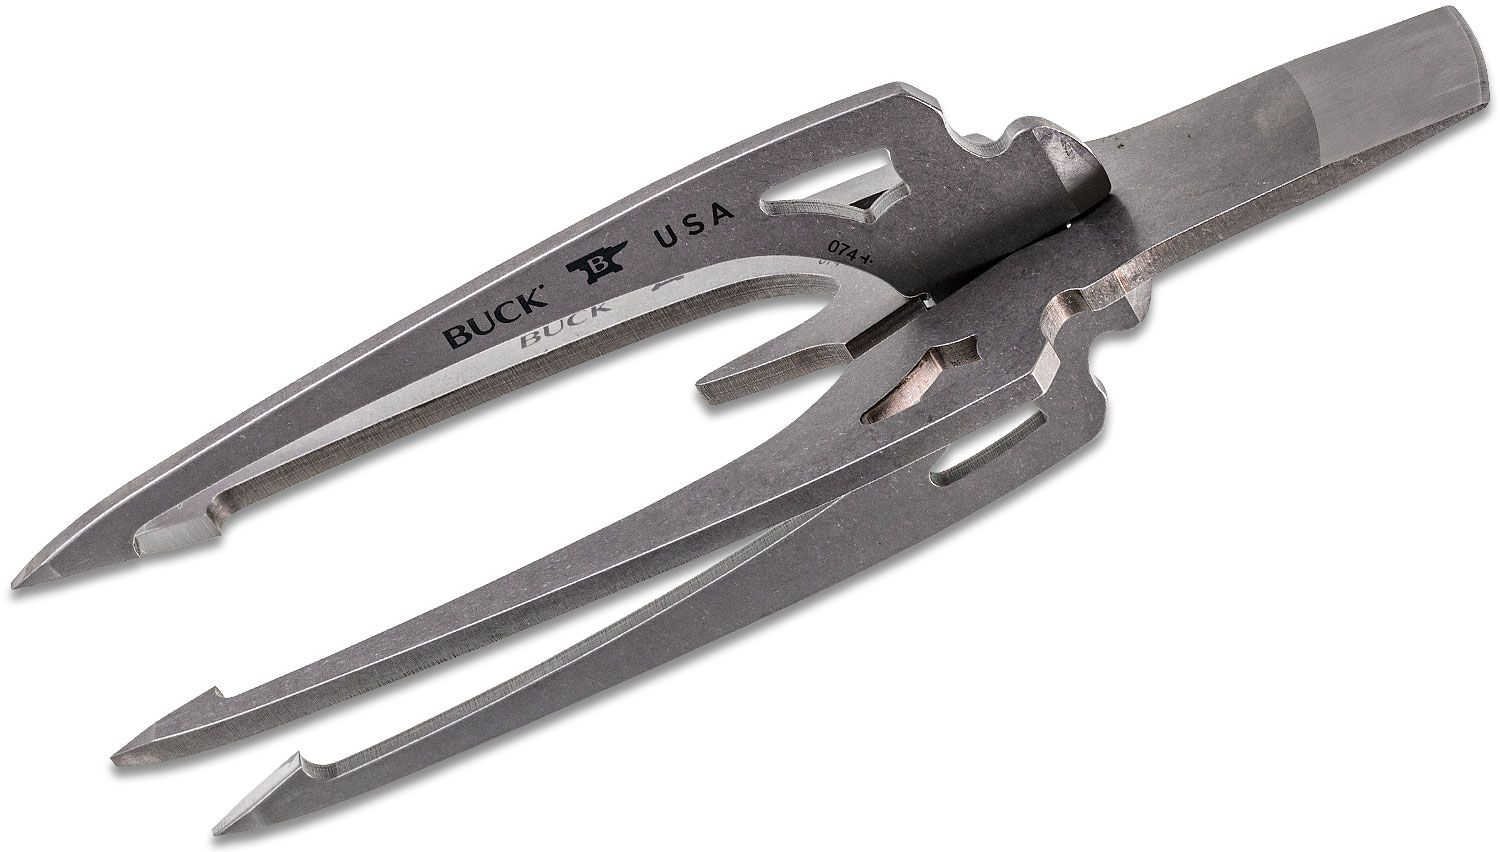 Buck 074 Kinetic Fishing Spearhead, Four Tines, 9 inch Overall